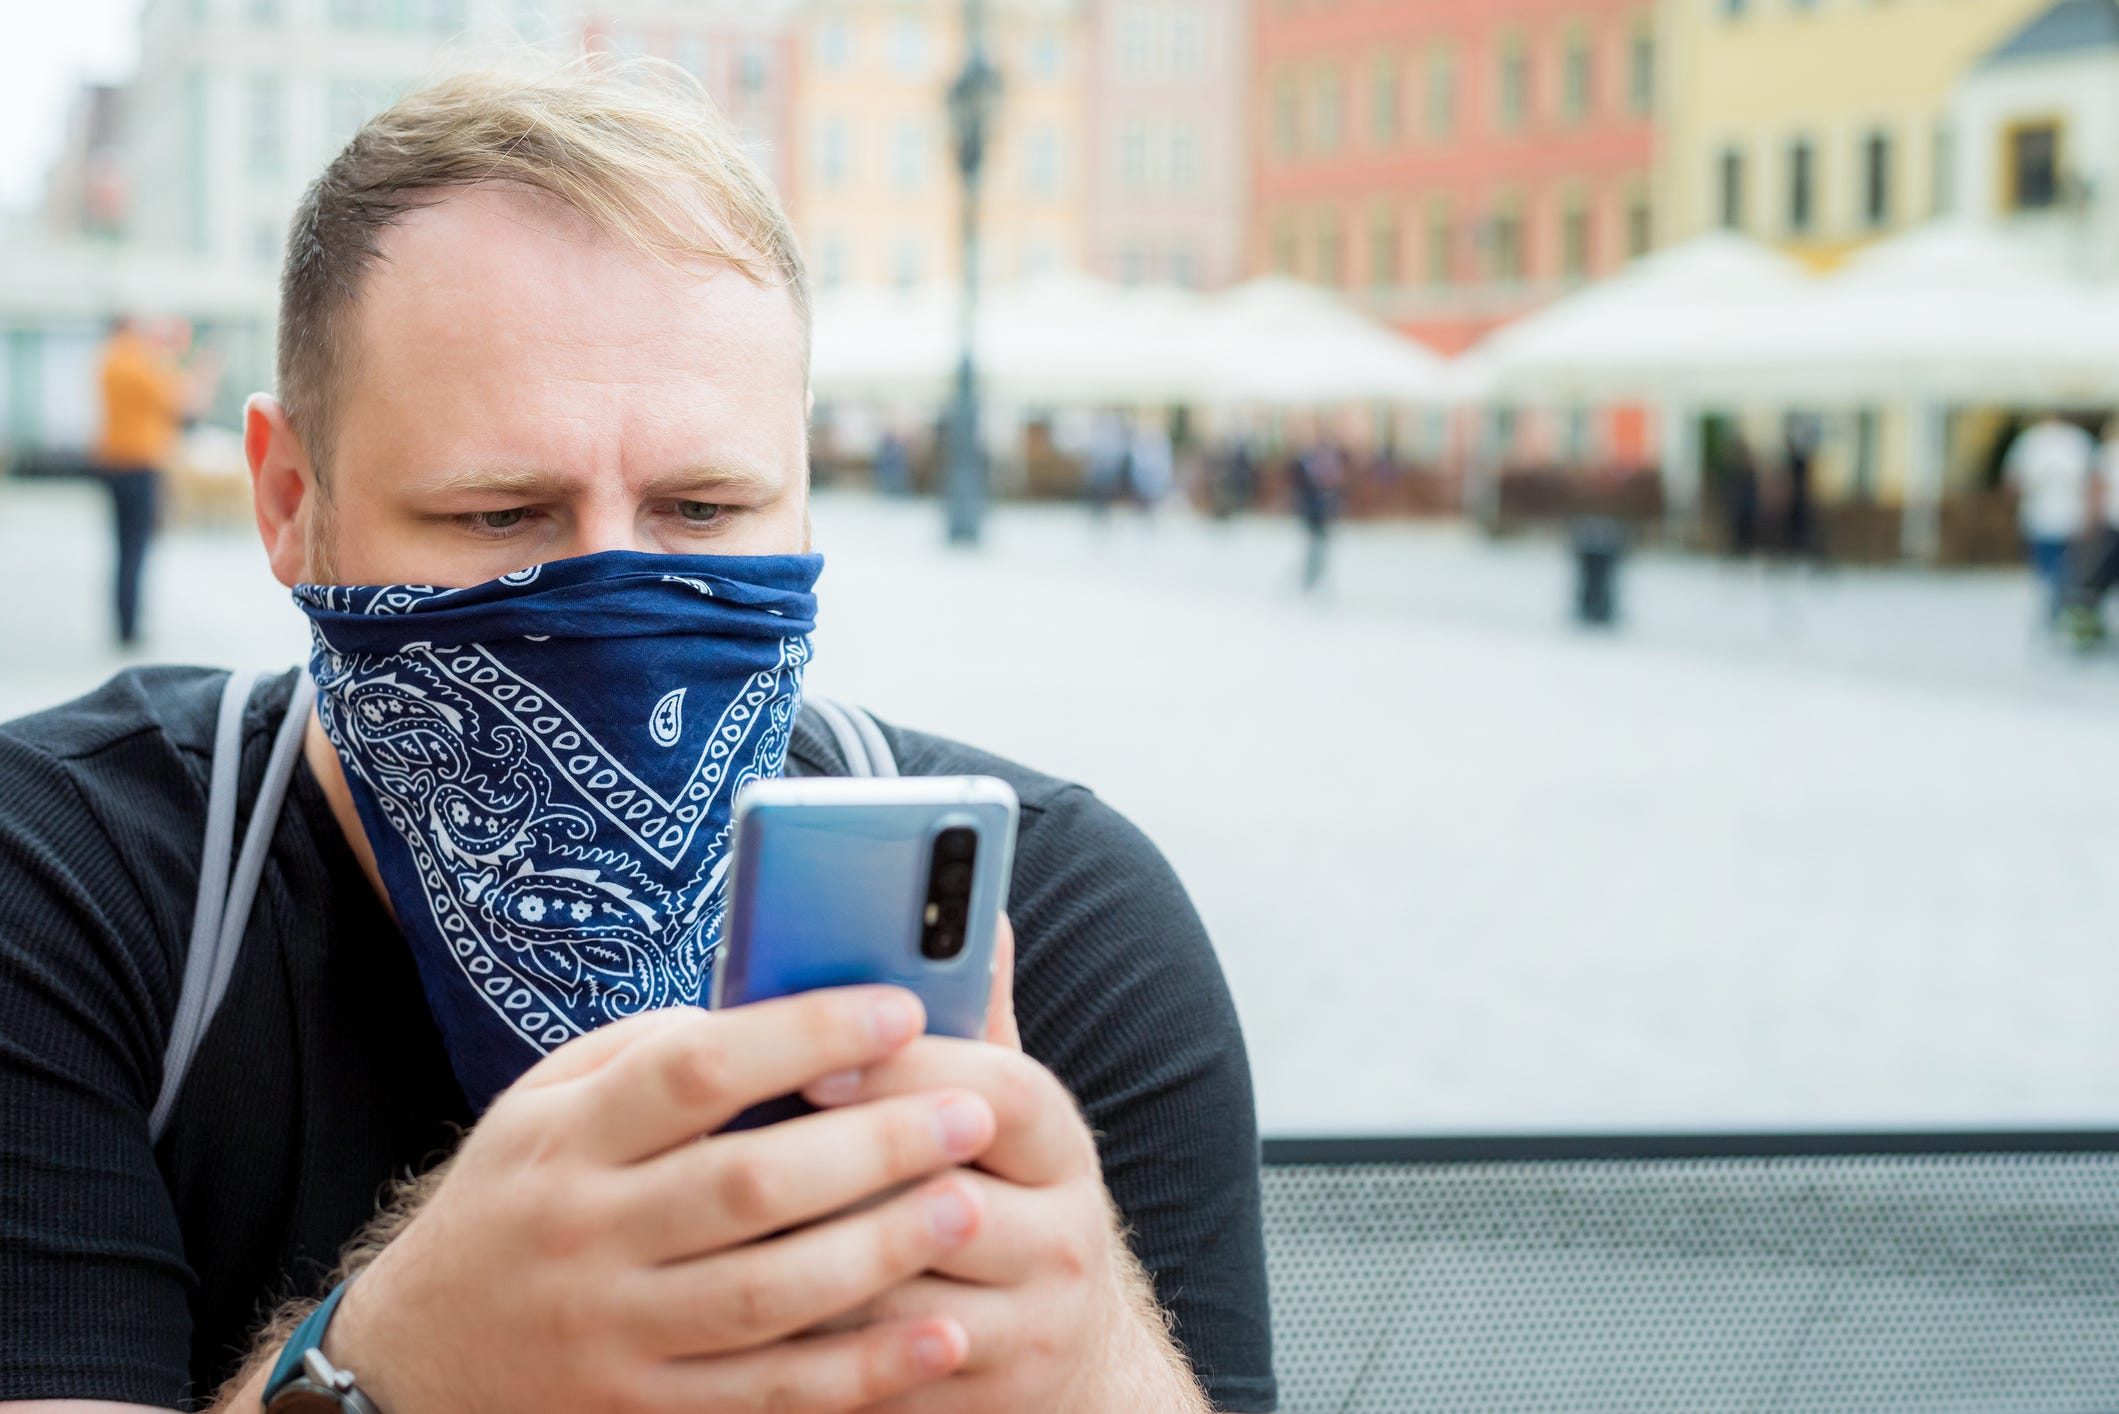 Neck gaiters, bandanas more harmful than not wearing a mask, Duke study suggests